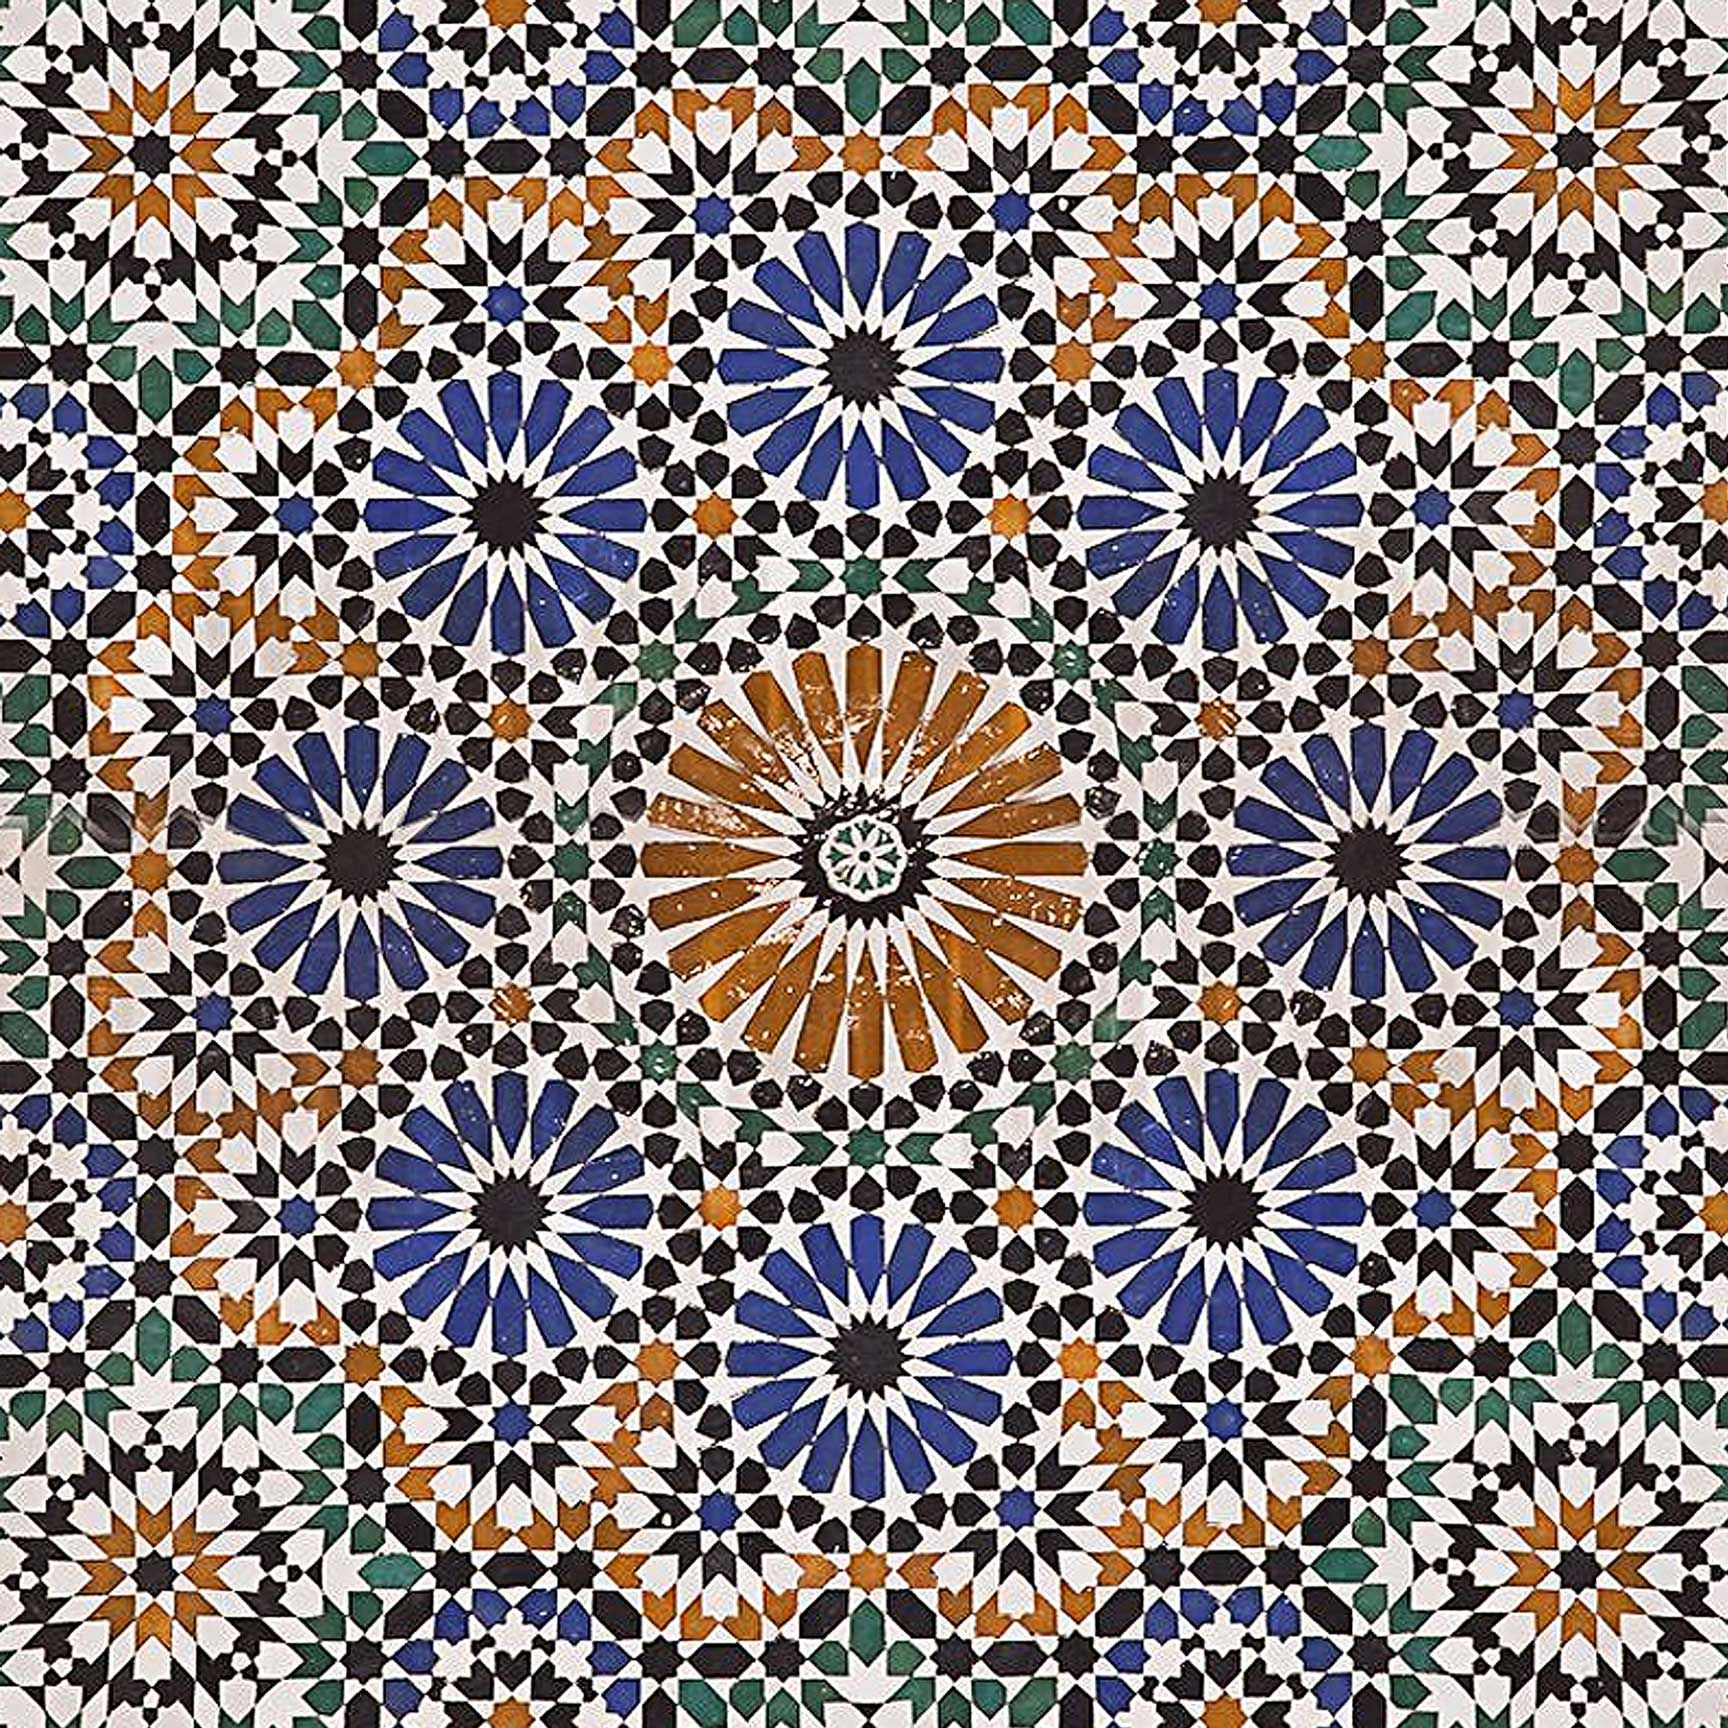 Morocco Mosaic Printed Ceiling Tile In 2018 Home Decor Mosaic